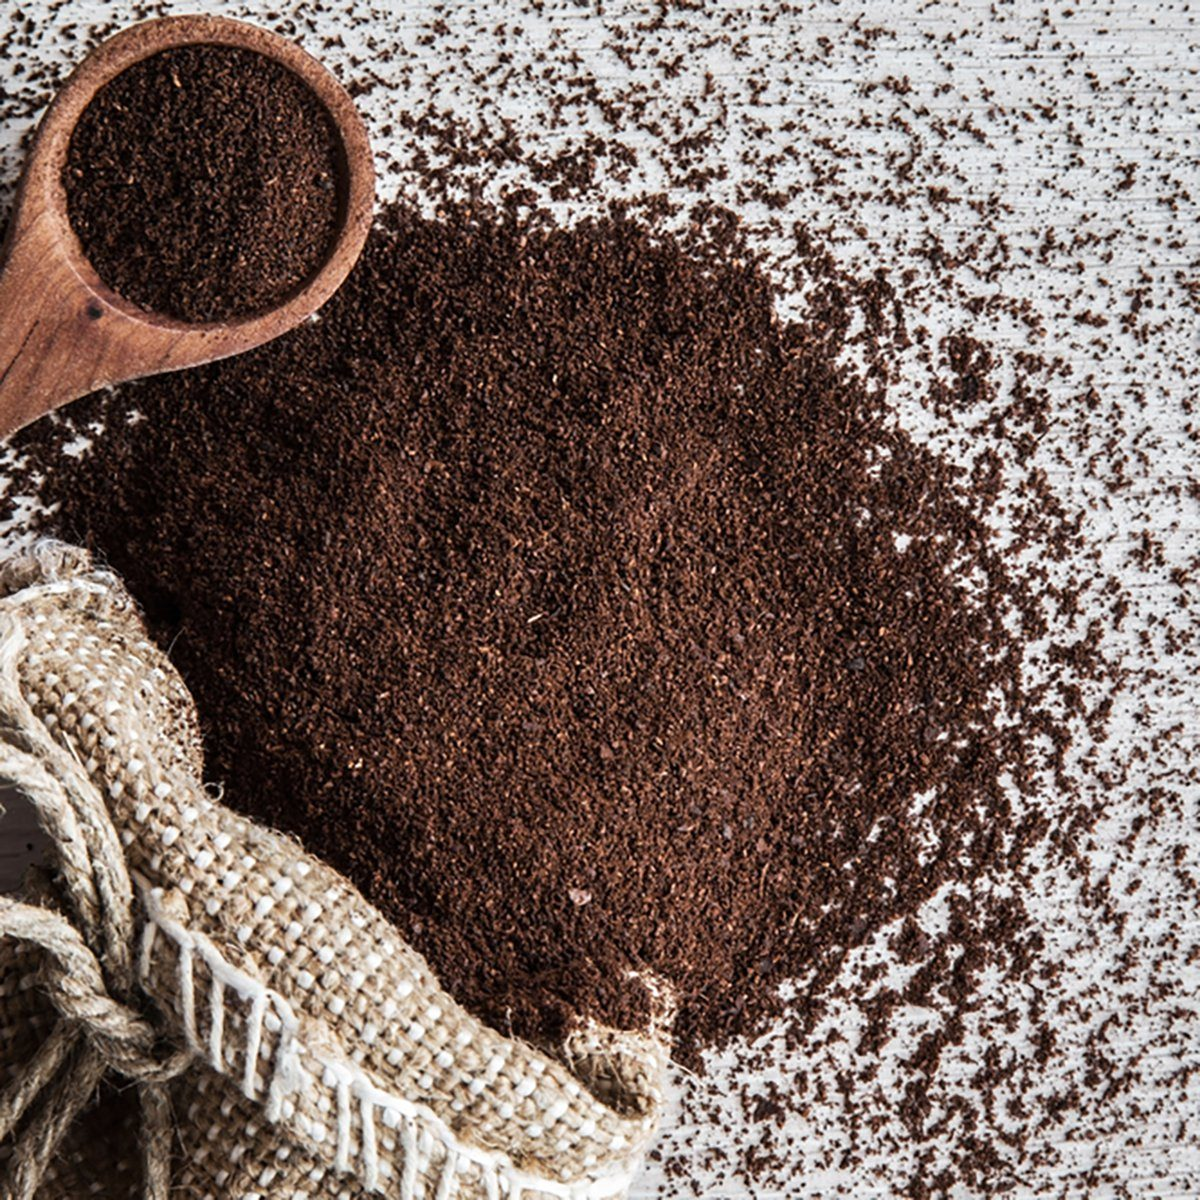 Ground coffee with burlap bag on the wooden table in the kitchen